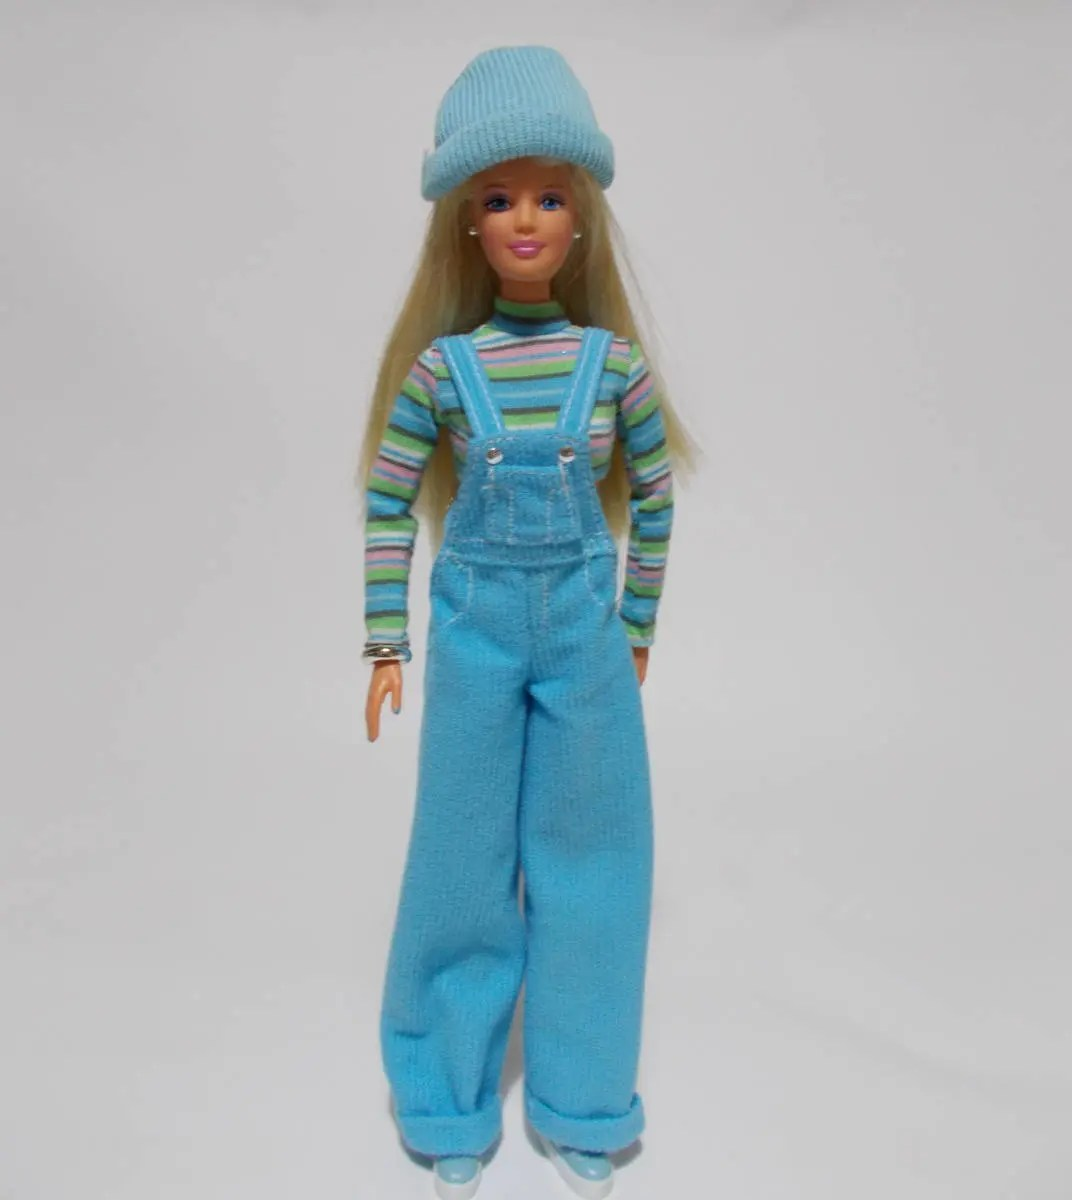 Barbie Küche 90er Vintage Cool Blue Barbie Jointed Body 90 39s Style Doll